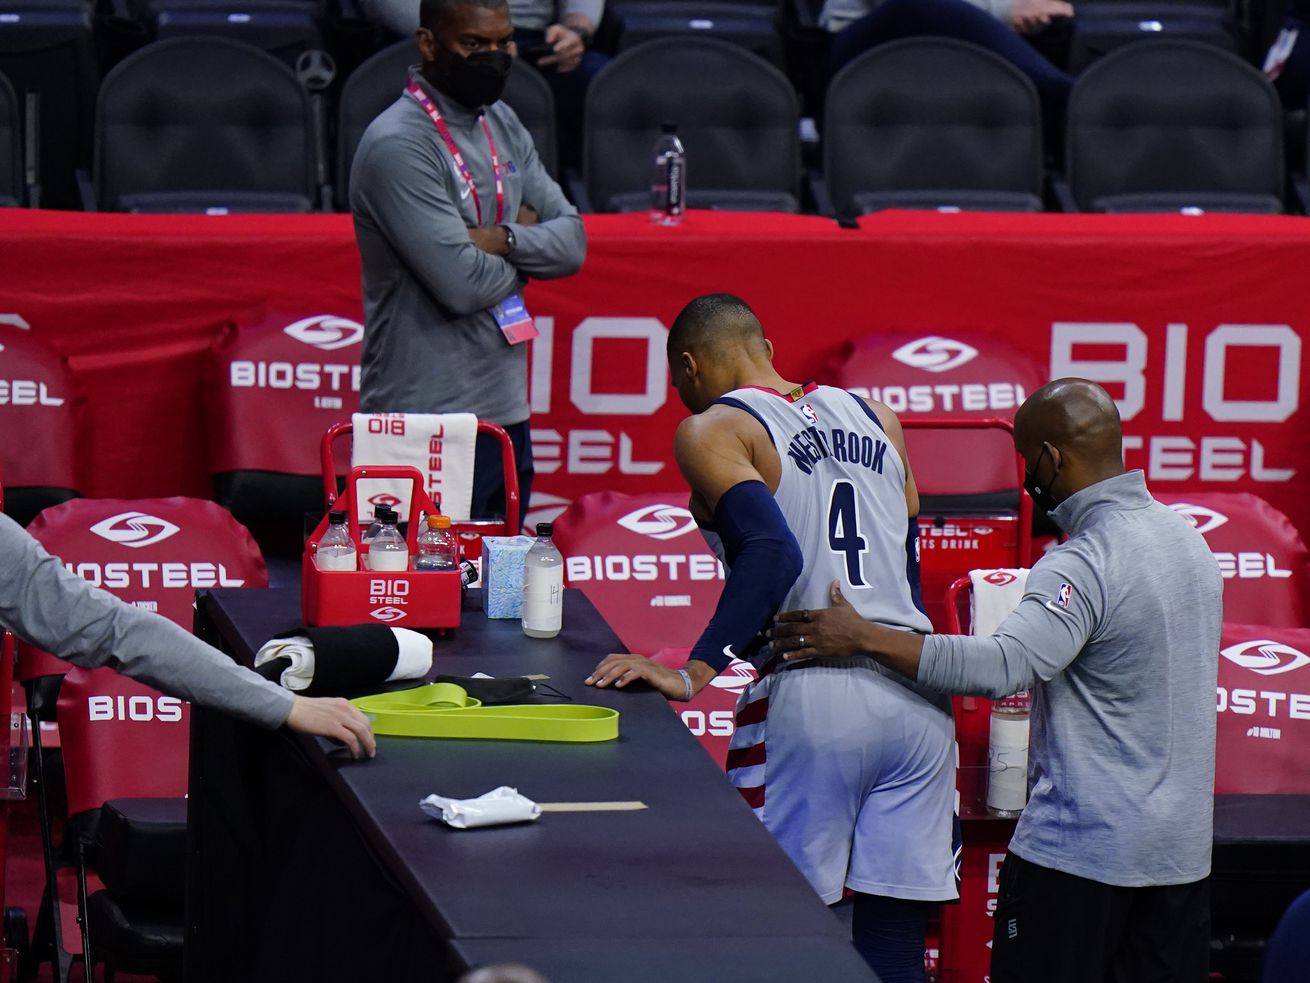 The Washington Wizards' Russell Westbrook is helped to the locker room after an injury Wednesday.